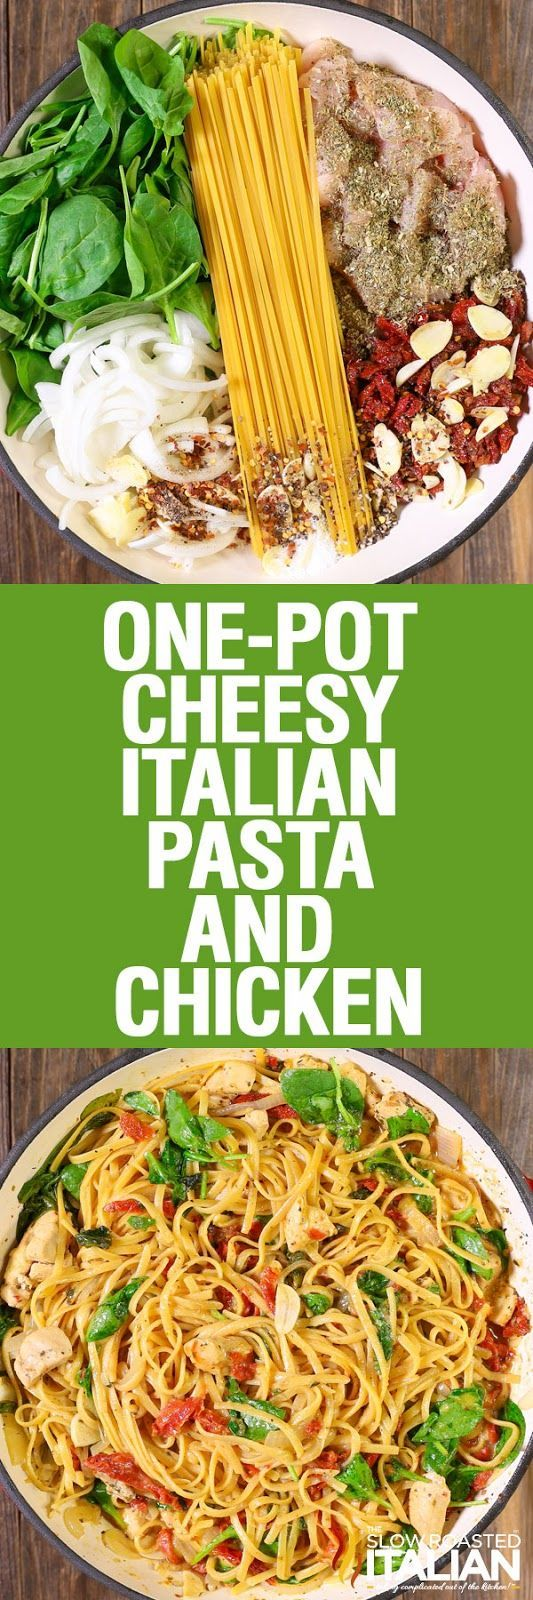 ONE-POT CHEESY ITALIAN PASTA AND CHICKEN